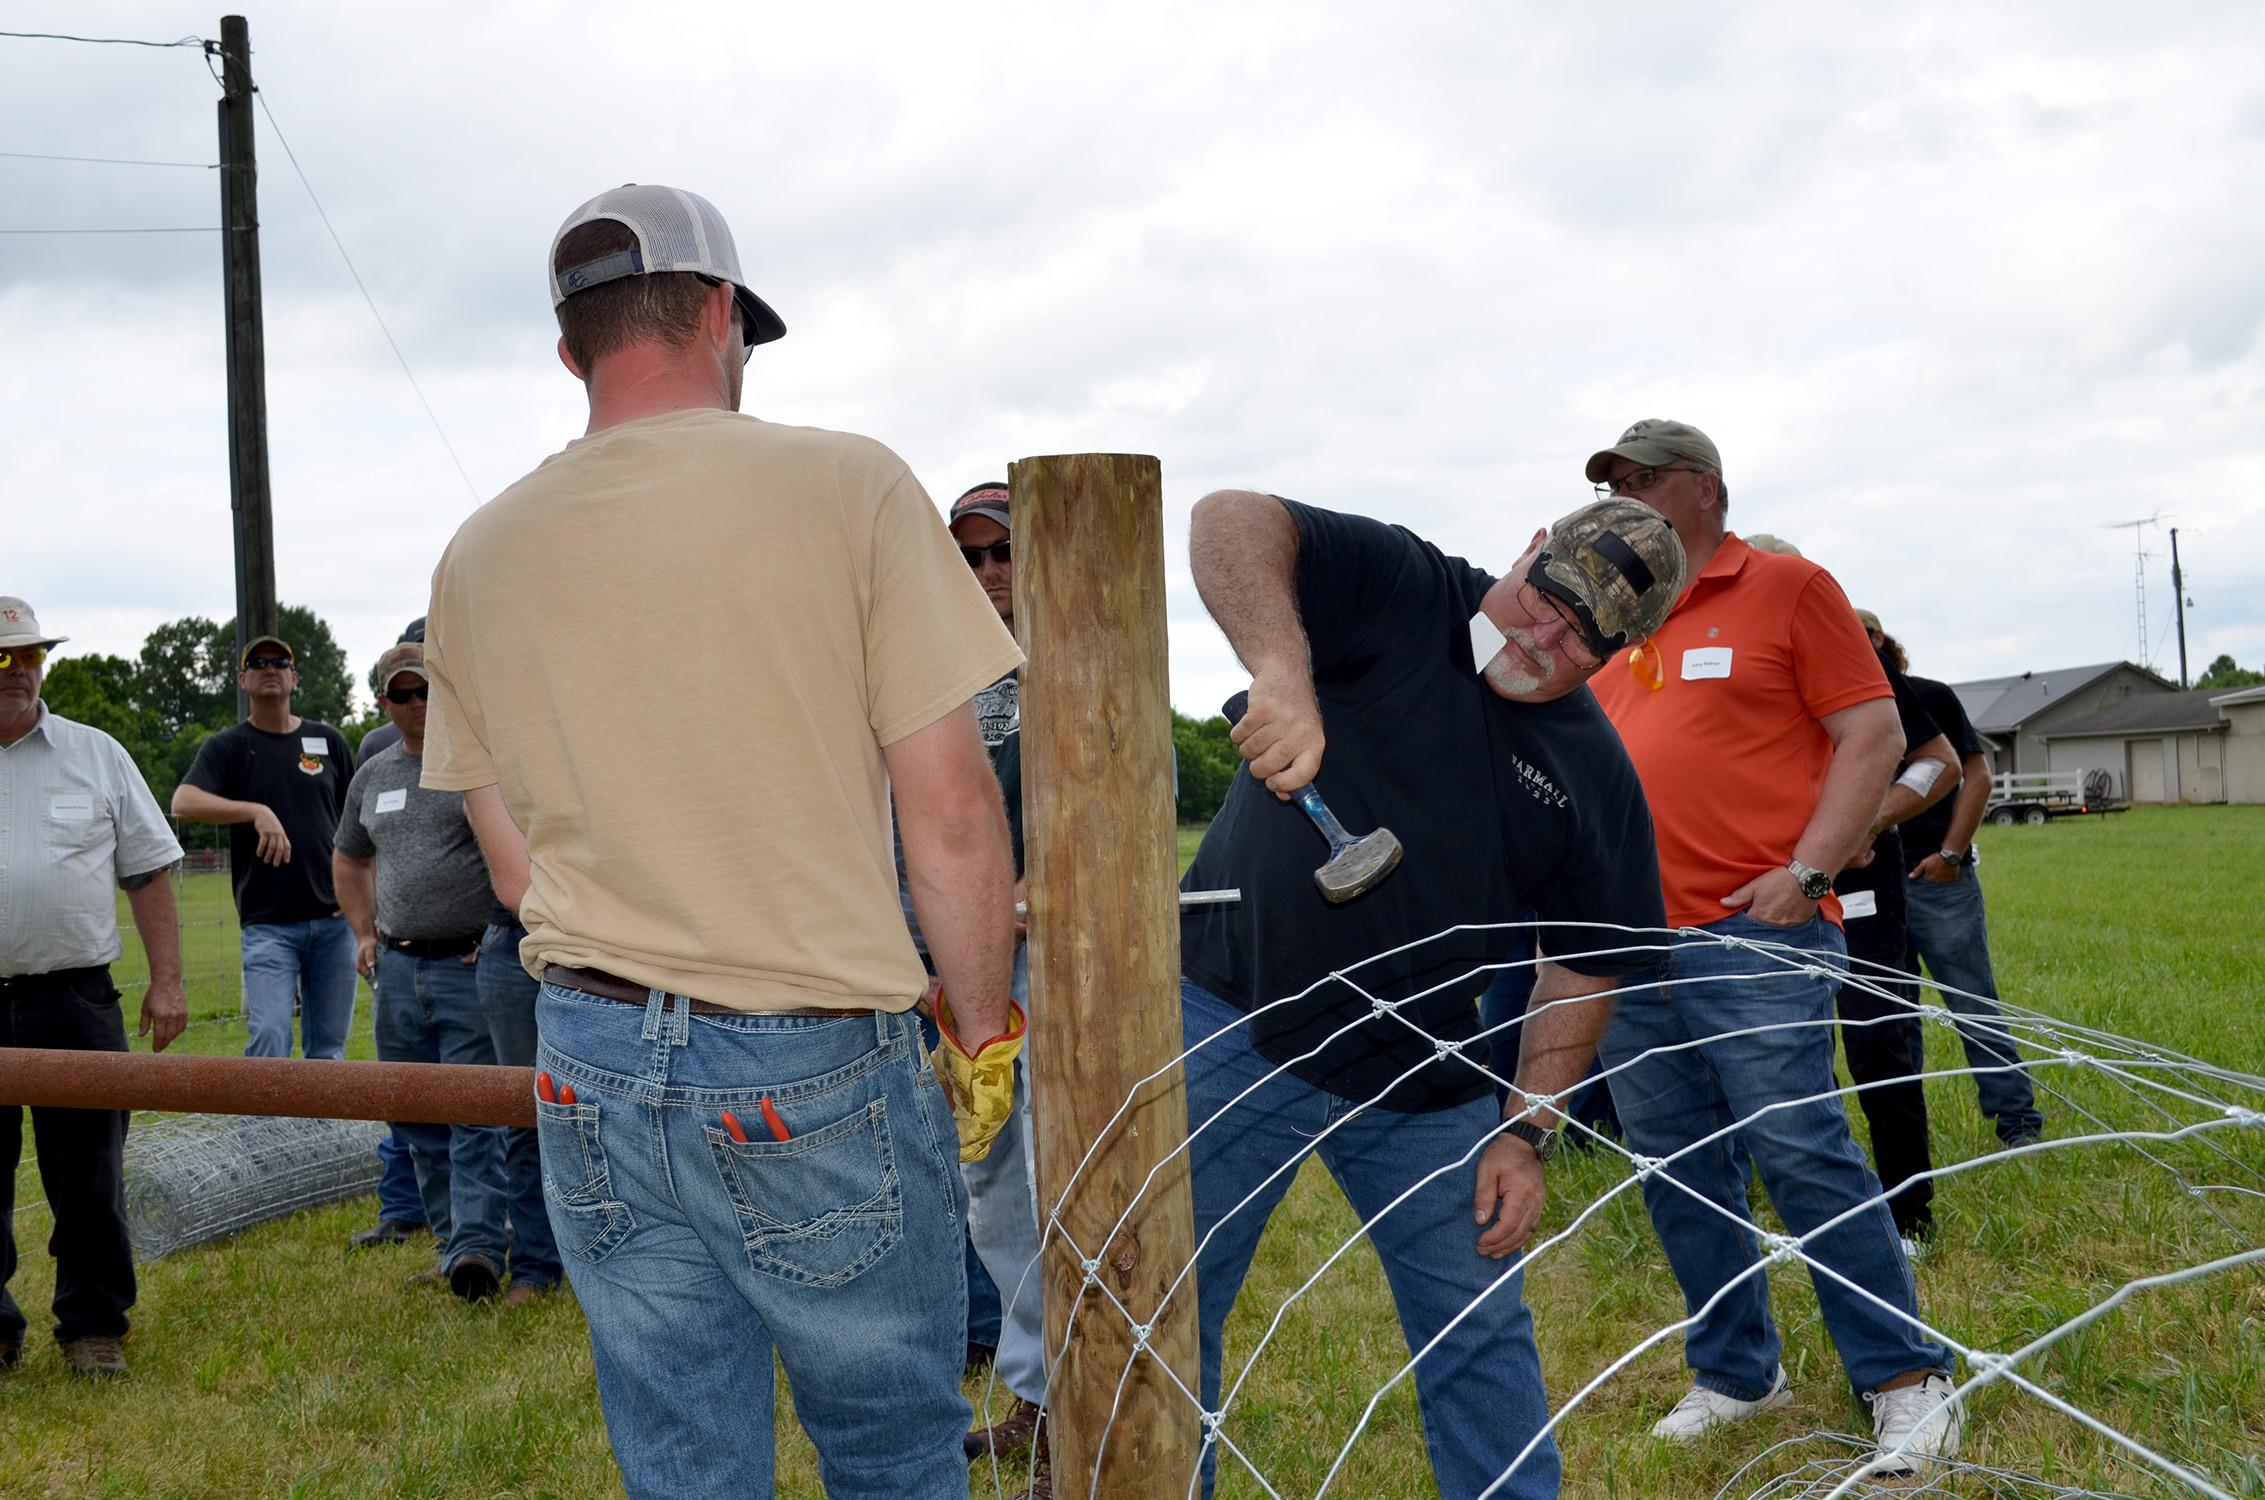 Butch King, Kentucky Fencing School participant, participates in a on-site fence construction demonstration in Logan County. Photo by Katie Pratt, UK agricultural communications.